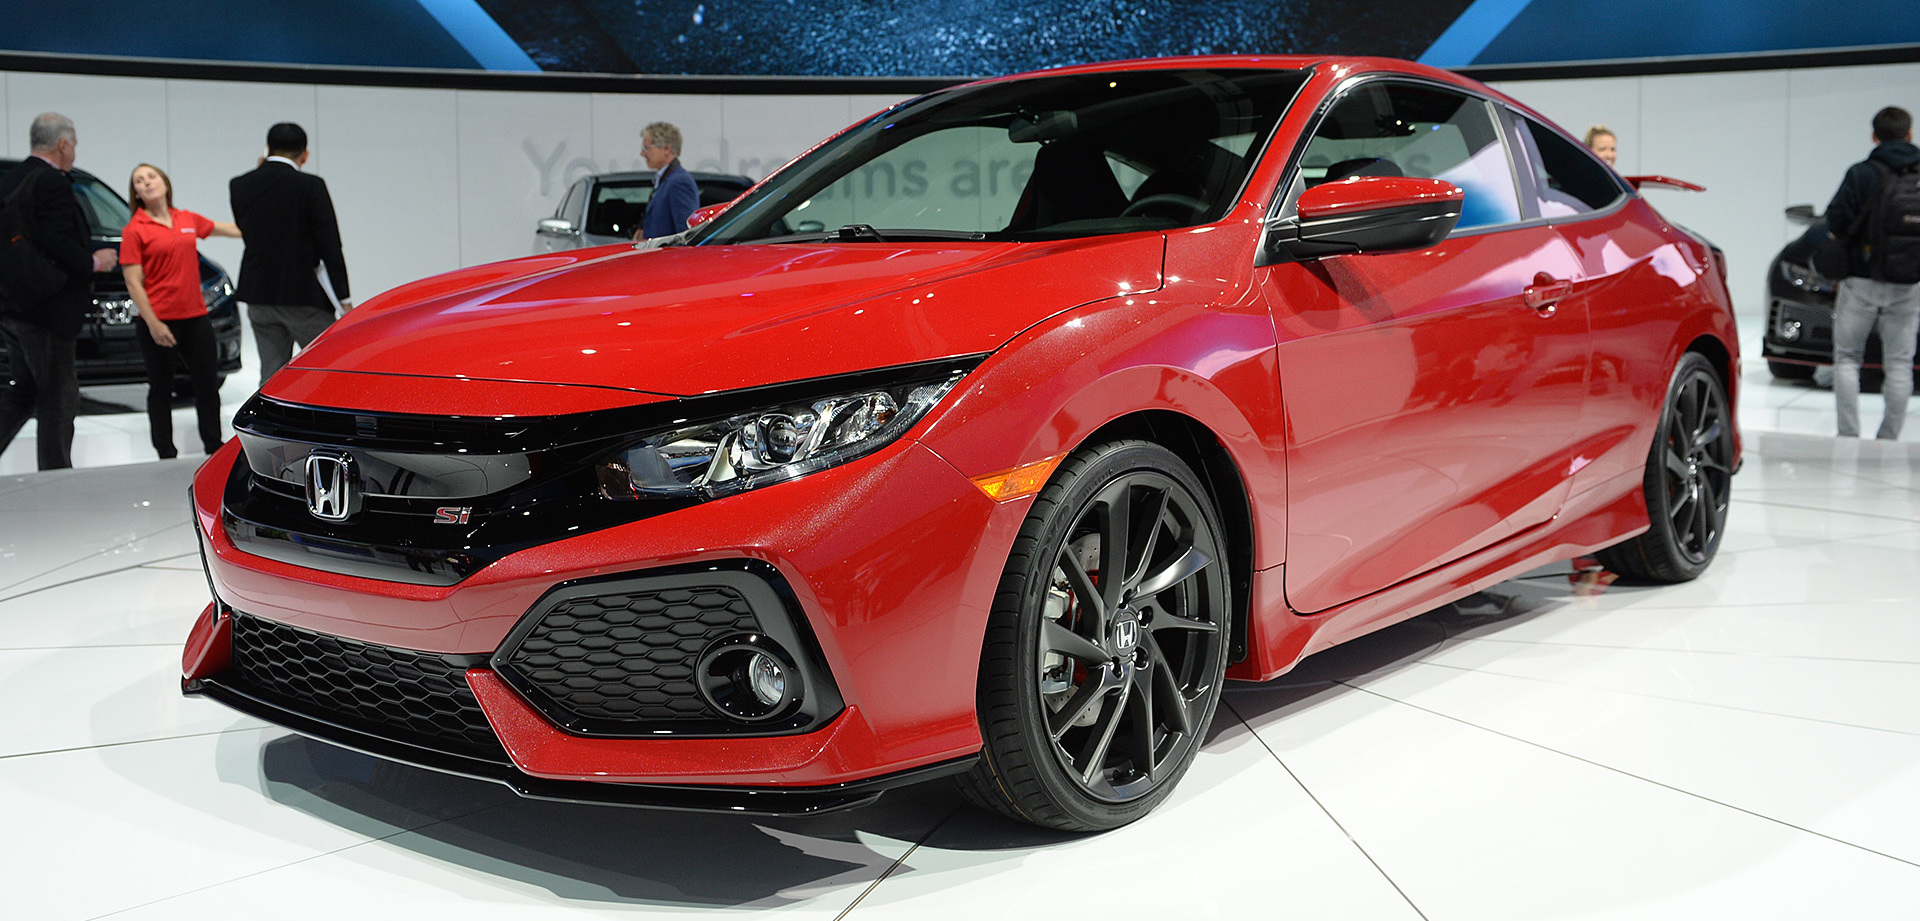 2018 Honda Civic Si will have 192 lb-ft of torque